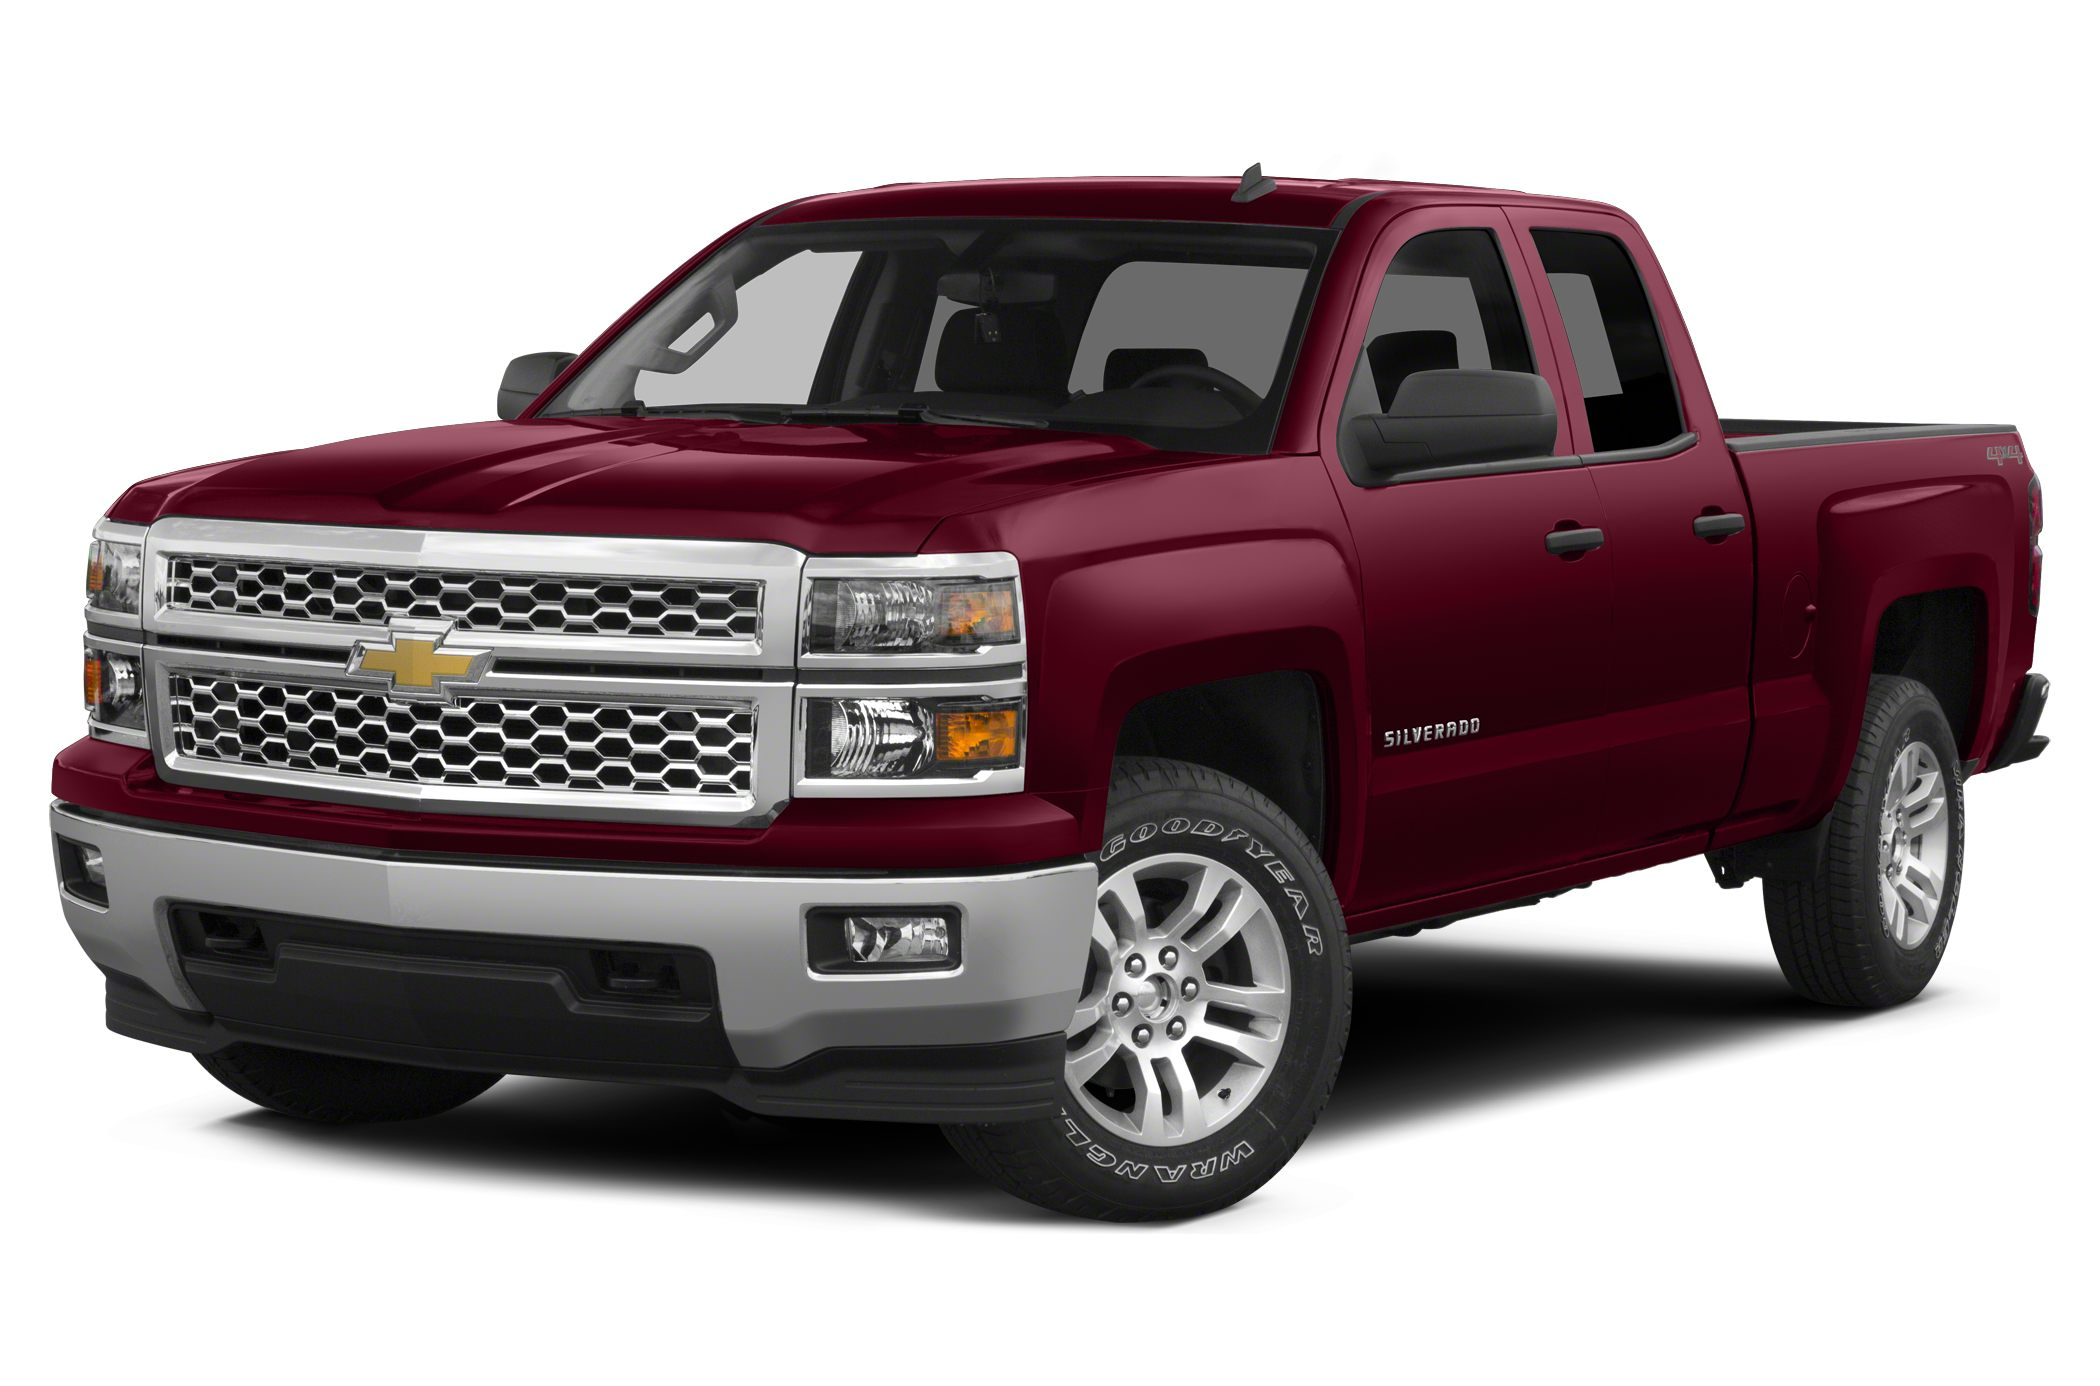 with en pages gm rugged news country adds high new luxury silverado chevrolet silveradohighctry content media detail us home silv may